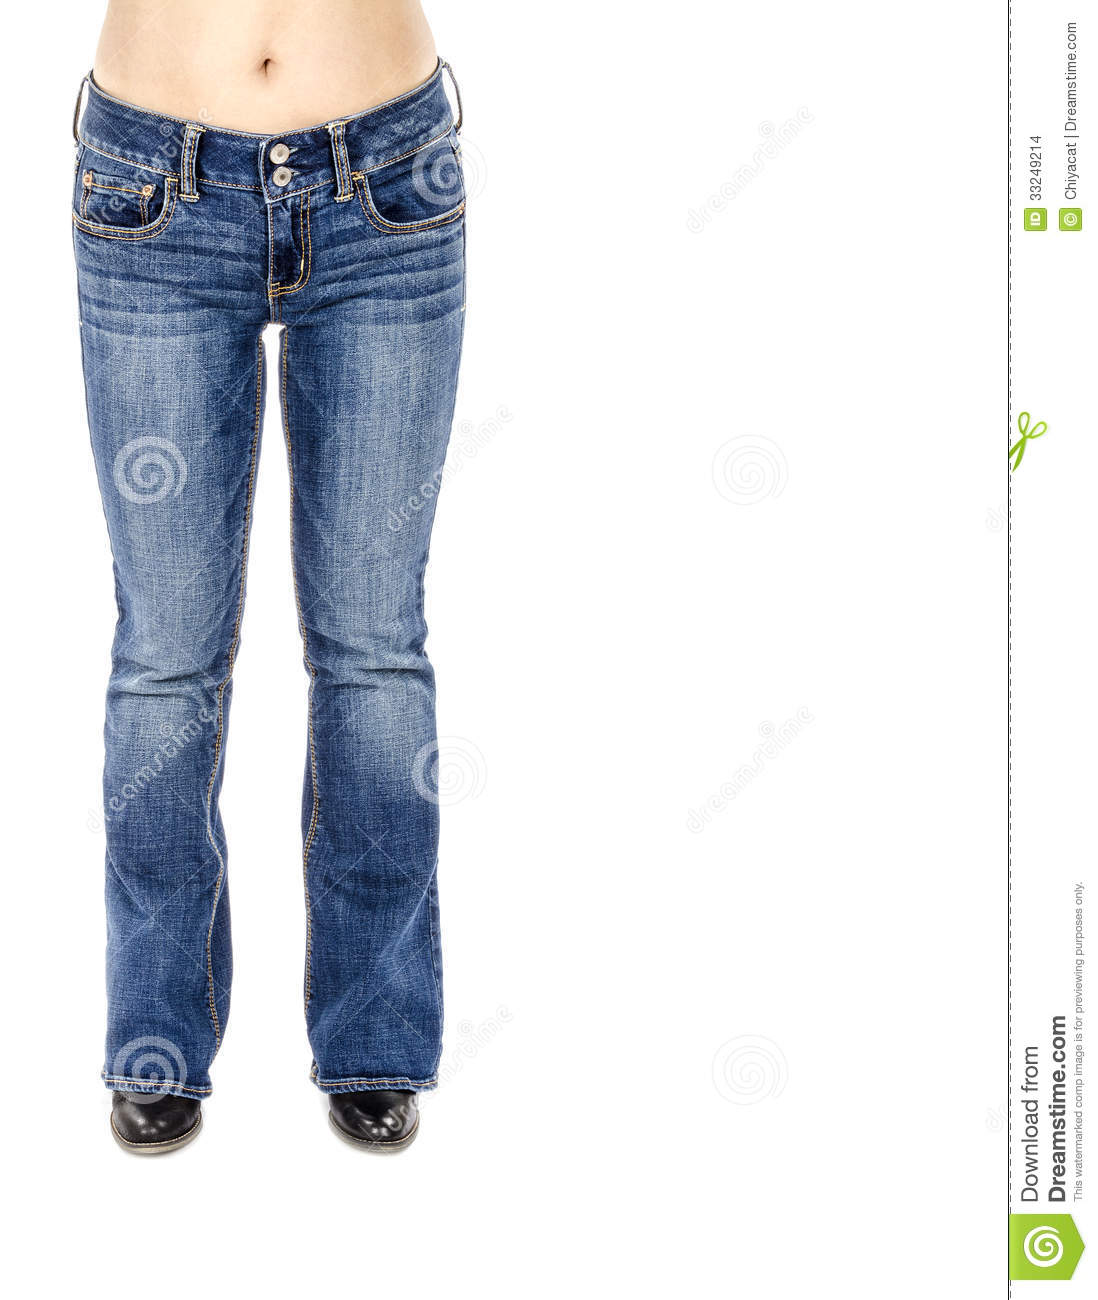 Blue And Black Jeans - Jeans Am